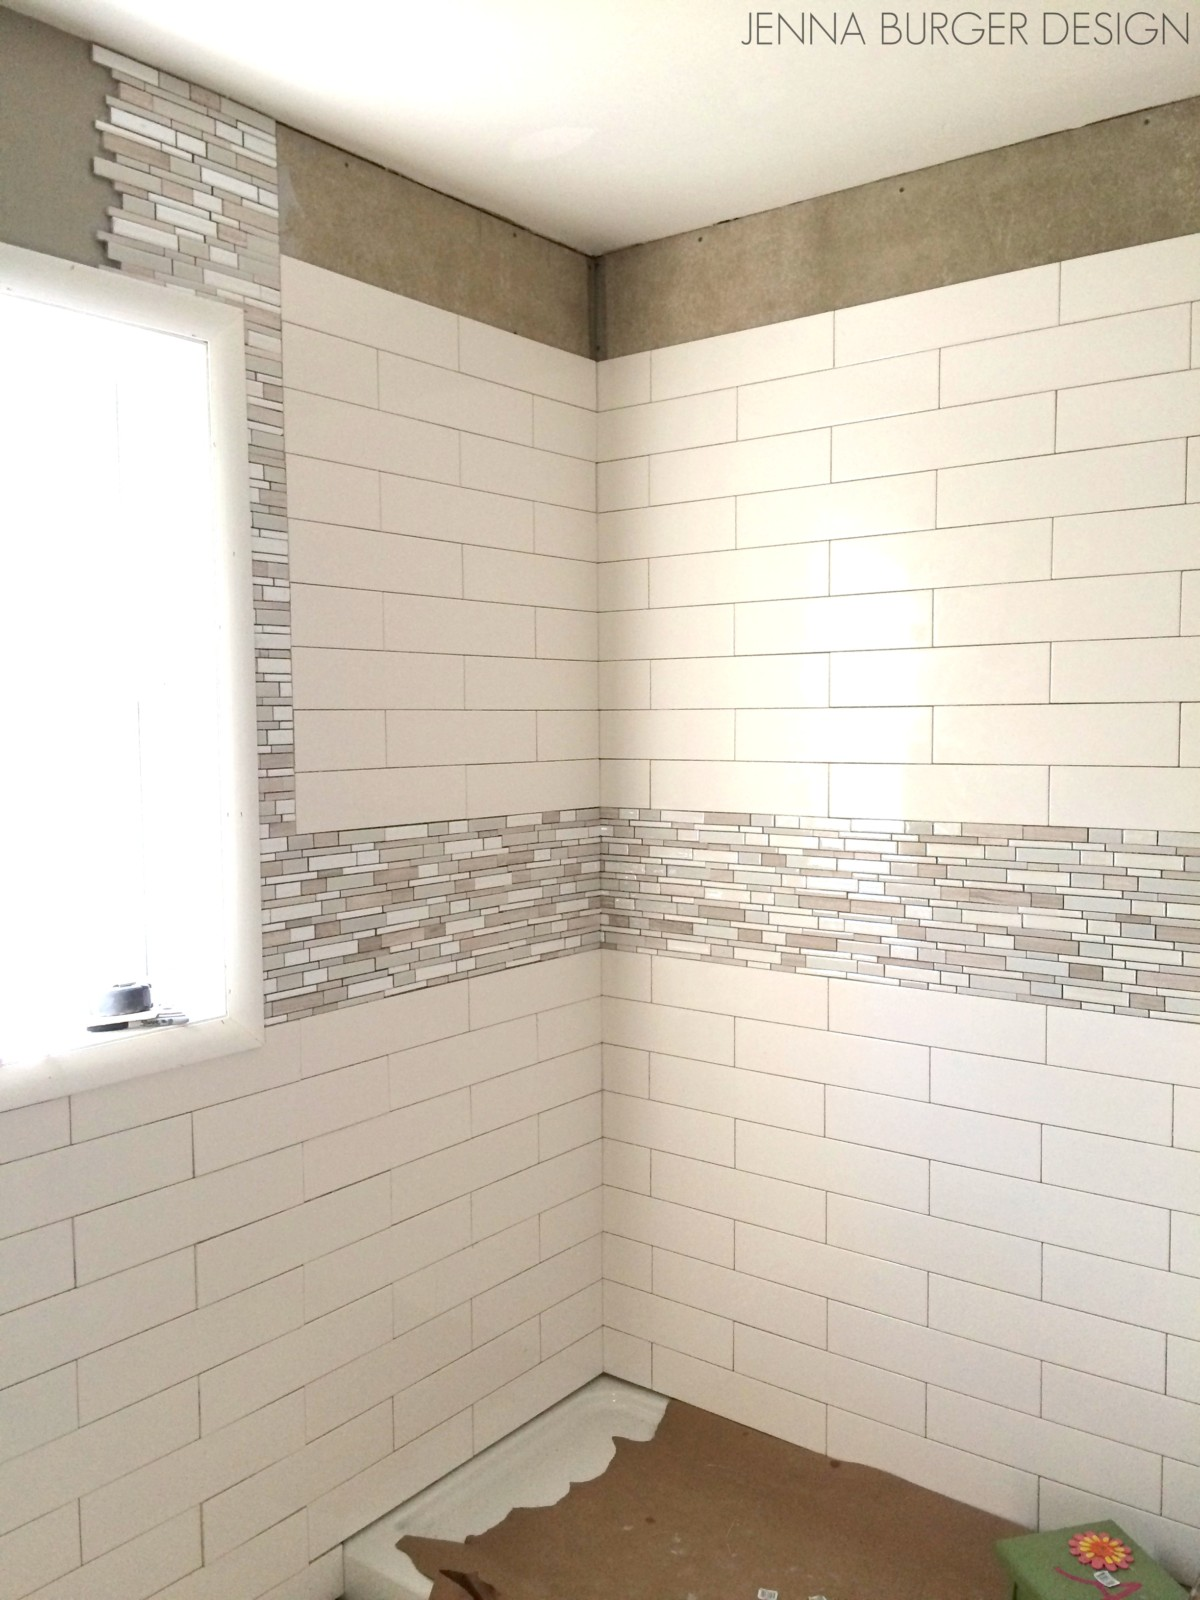 Master Bathroom Renovation: Tile + Grout - Jenna Burger